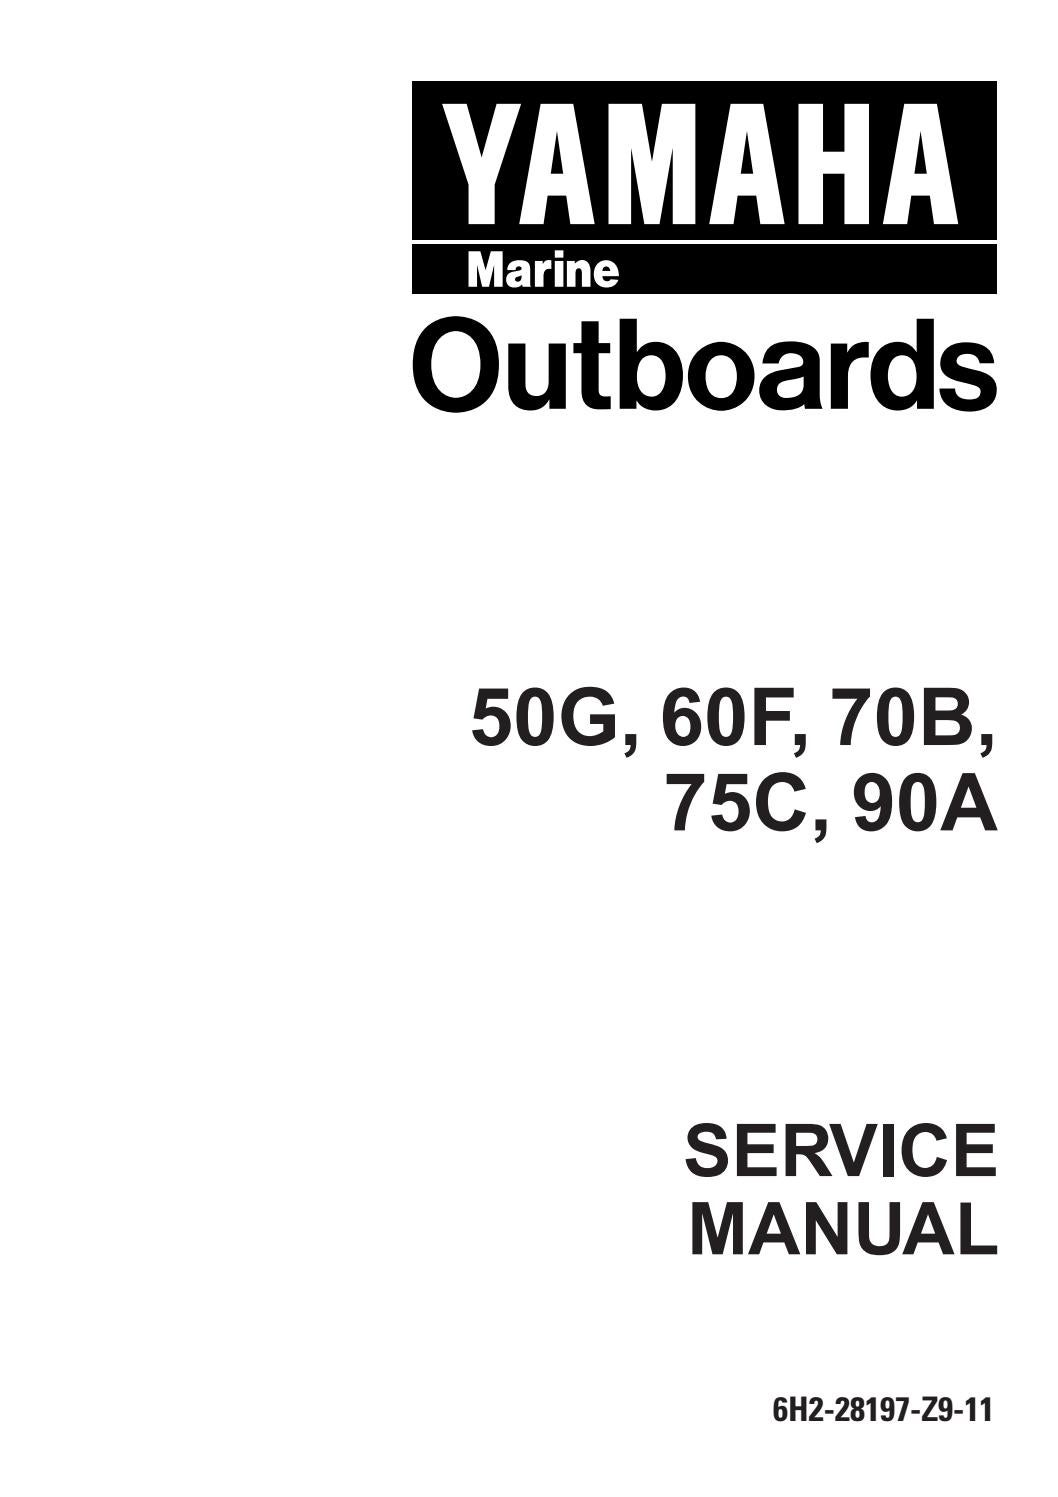 Yamaha 60feto outboard service repair manual x 732000 by